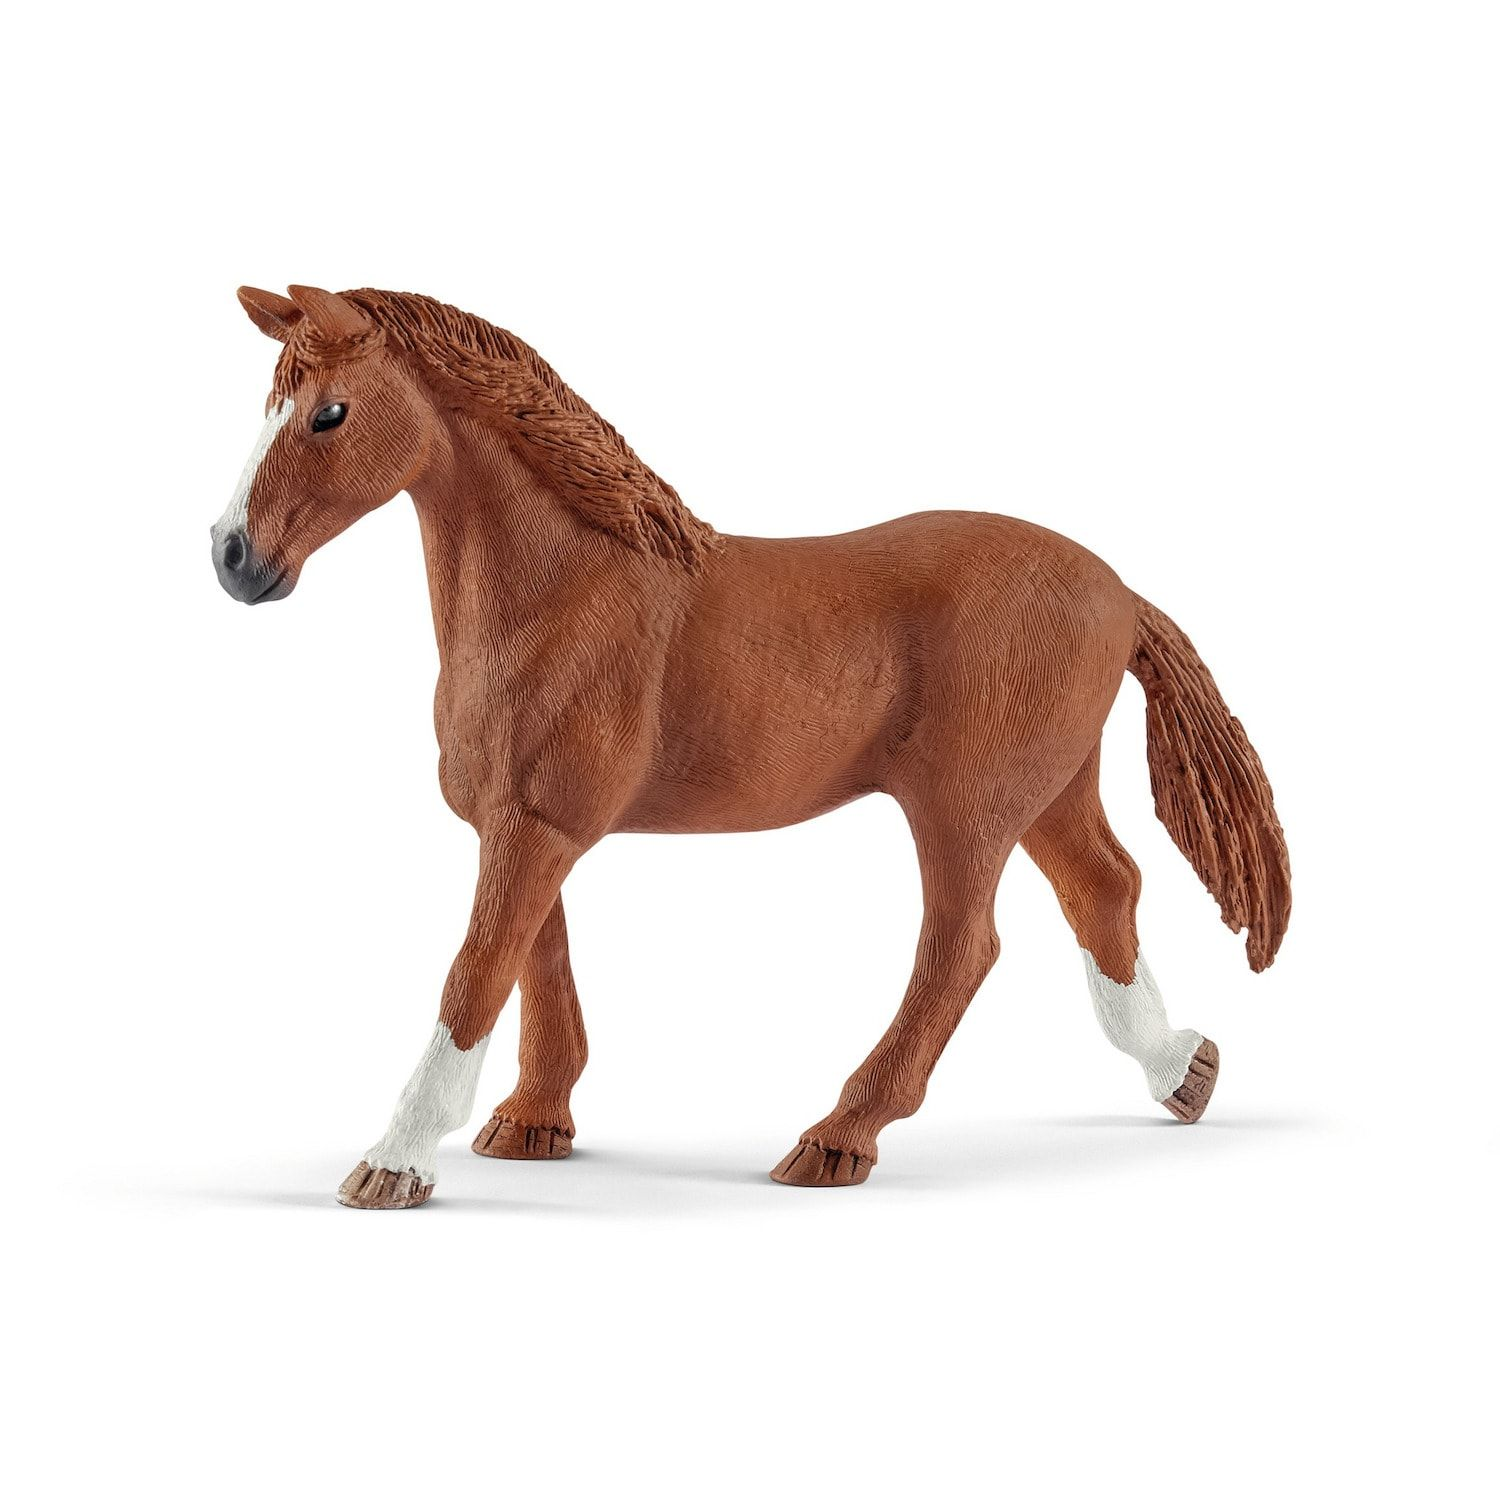 Schleich Horse Club Hannah S Guest Horses With Ruby The Dog Playset And Toy Figures Horses Schleich Bryer Horses